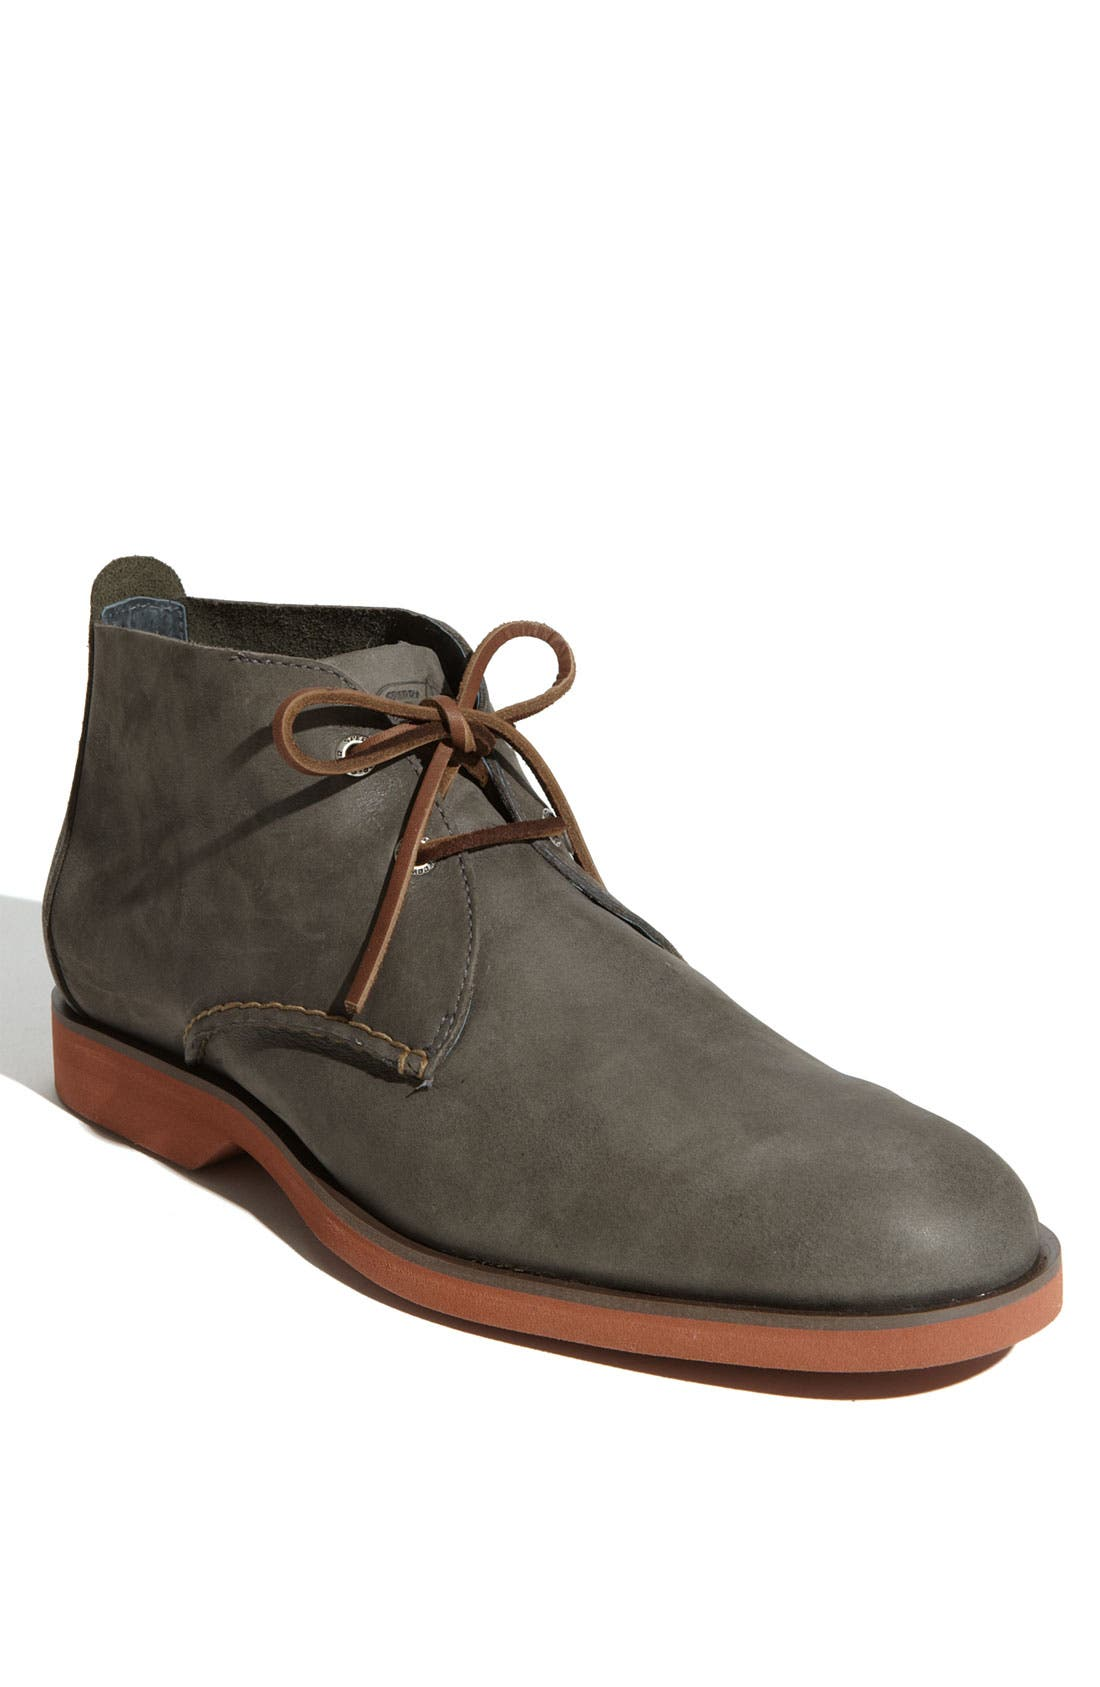 Top-Sider<sup>®</sup> 'Boat Ox' Chukka Boot,                         Main,                         color, 020